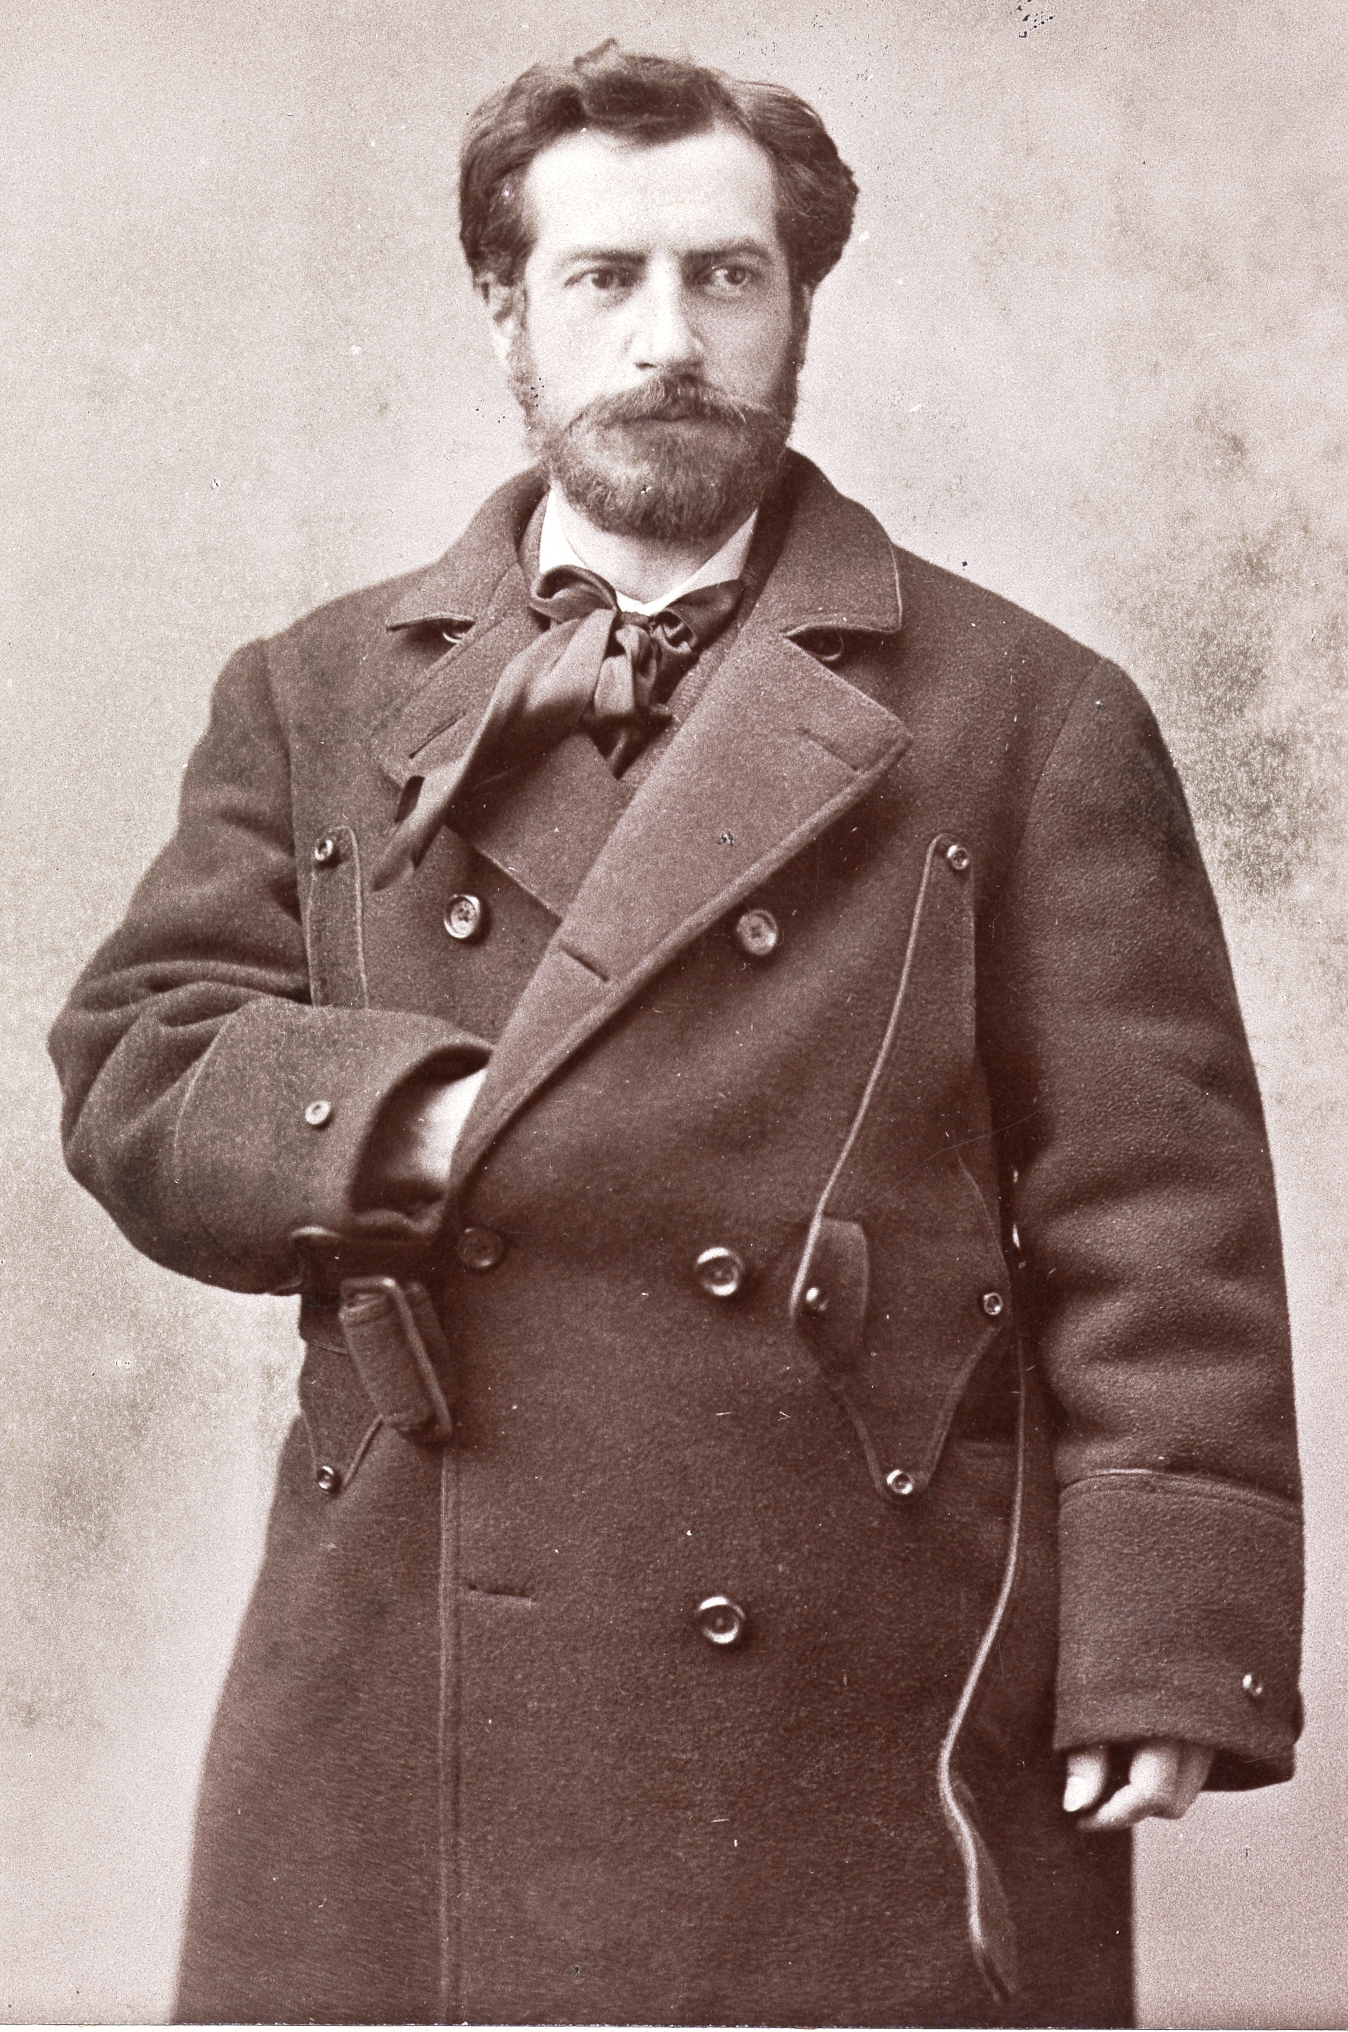 http://upload.wikimedia.org/wikipedia/commons/6/61/Frederic_Auguste_Bartholdi_crop.jpg